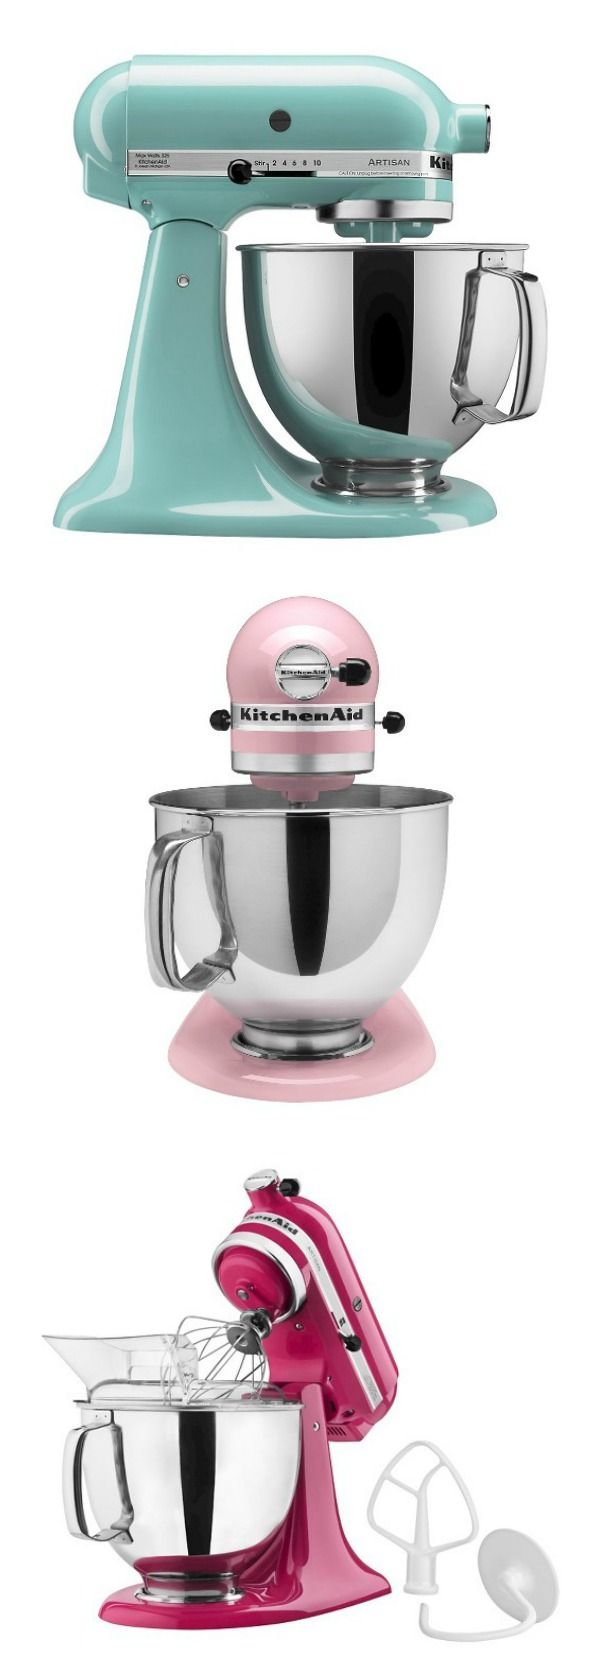 Whether you're looking for a gift, or simply looking to add a versatile tool to your own kitchen, this KitchenAid Artisan Stand Mixer is the perfect solution. It features 10 different speed settings, a tilt-head design, and a 5-quart stainless steel mixing bowl that fits a variety of different mixing needs. This electric stand mixer comes with a dough hook, flat beater, wire whisk and pouring shield so you can create a wide range of baked goodies or recipes with ease. #affiliate #target…